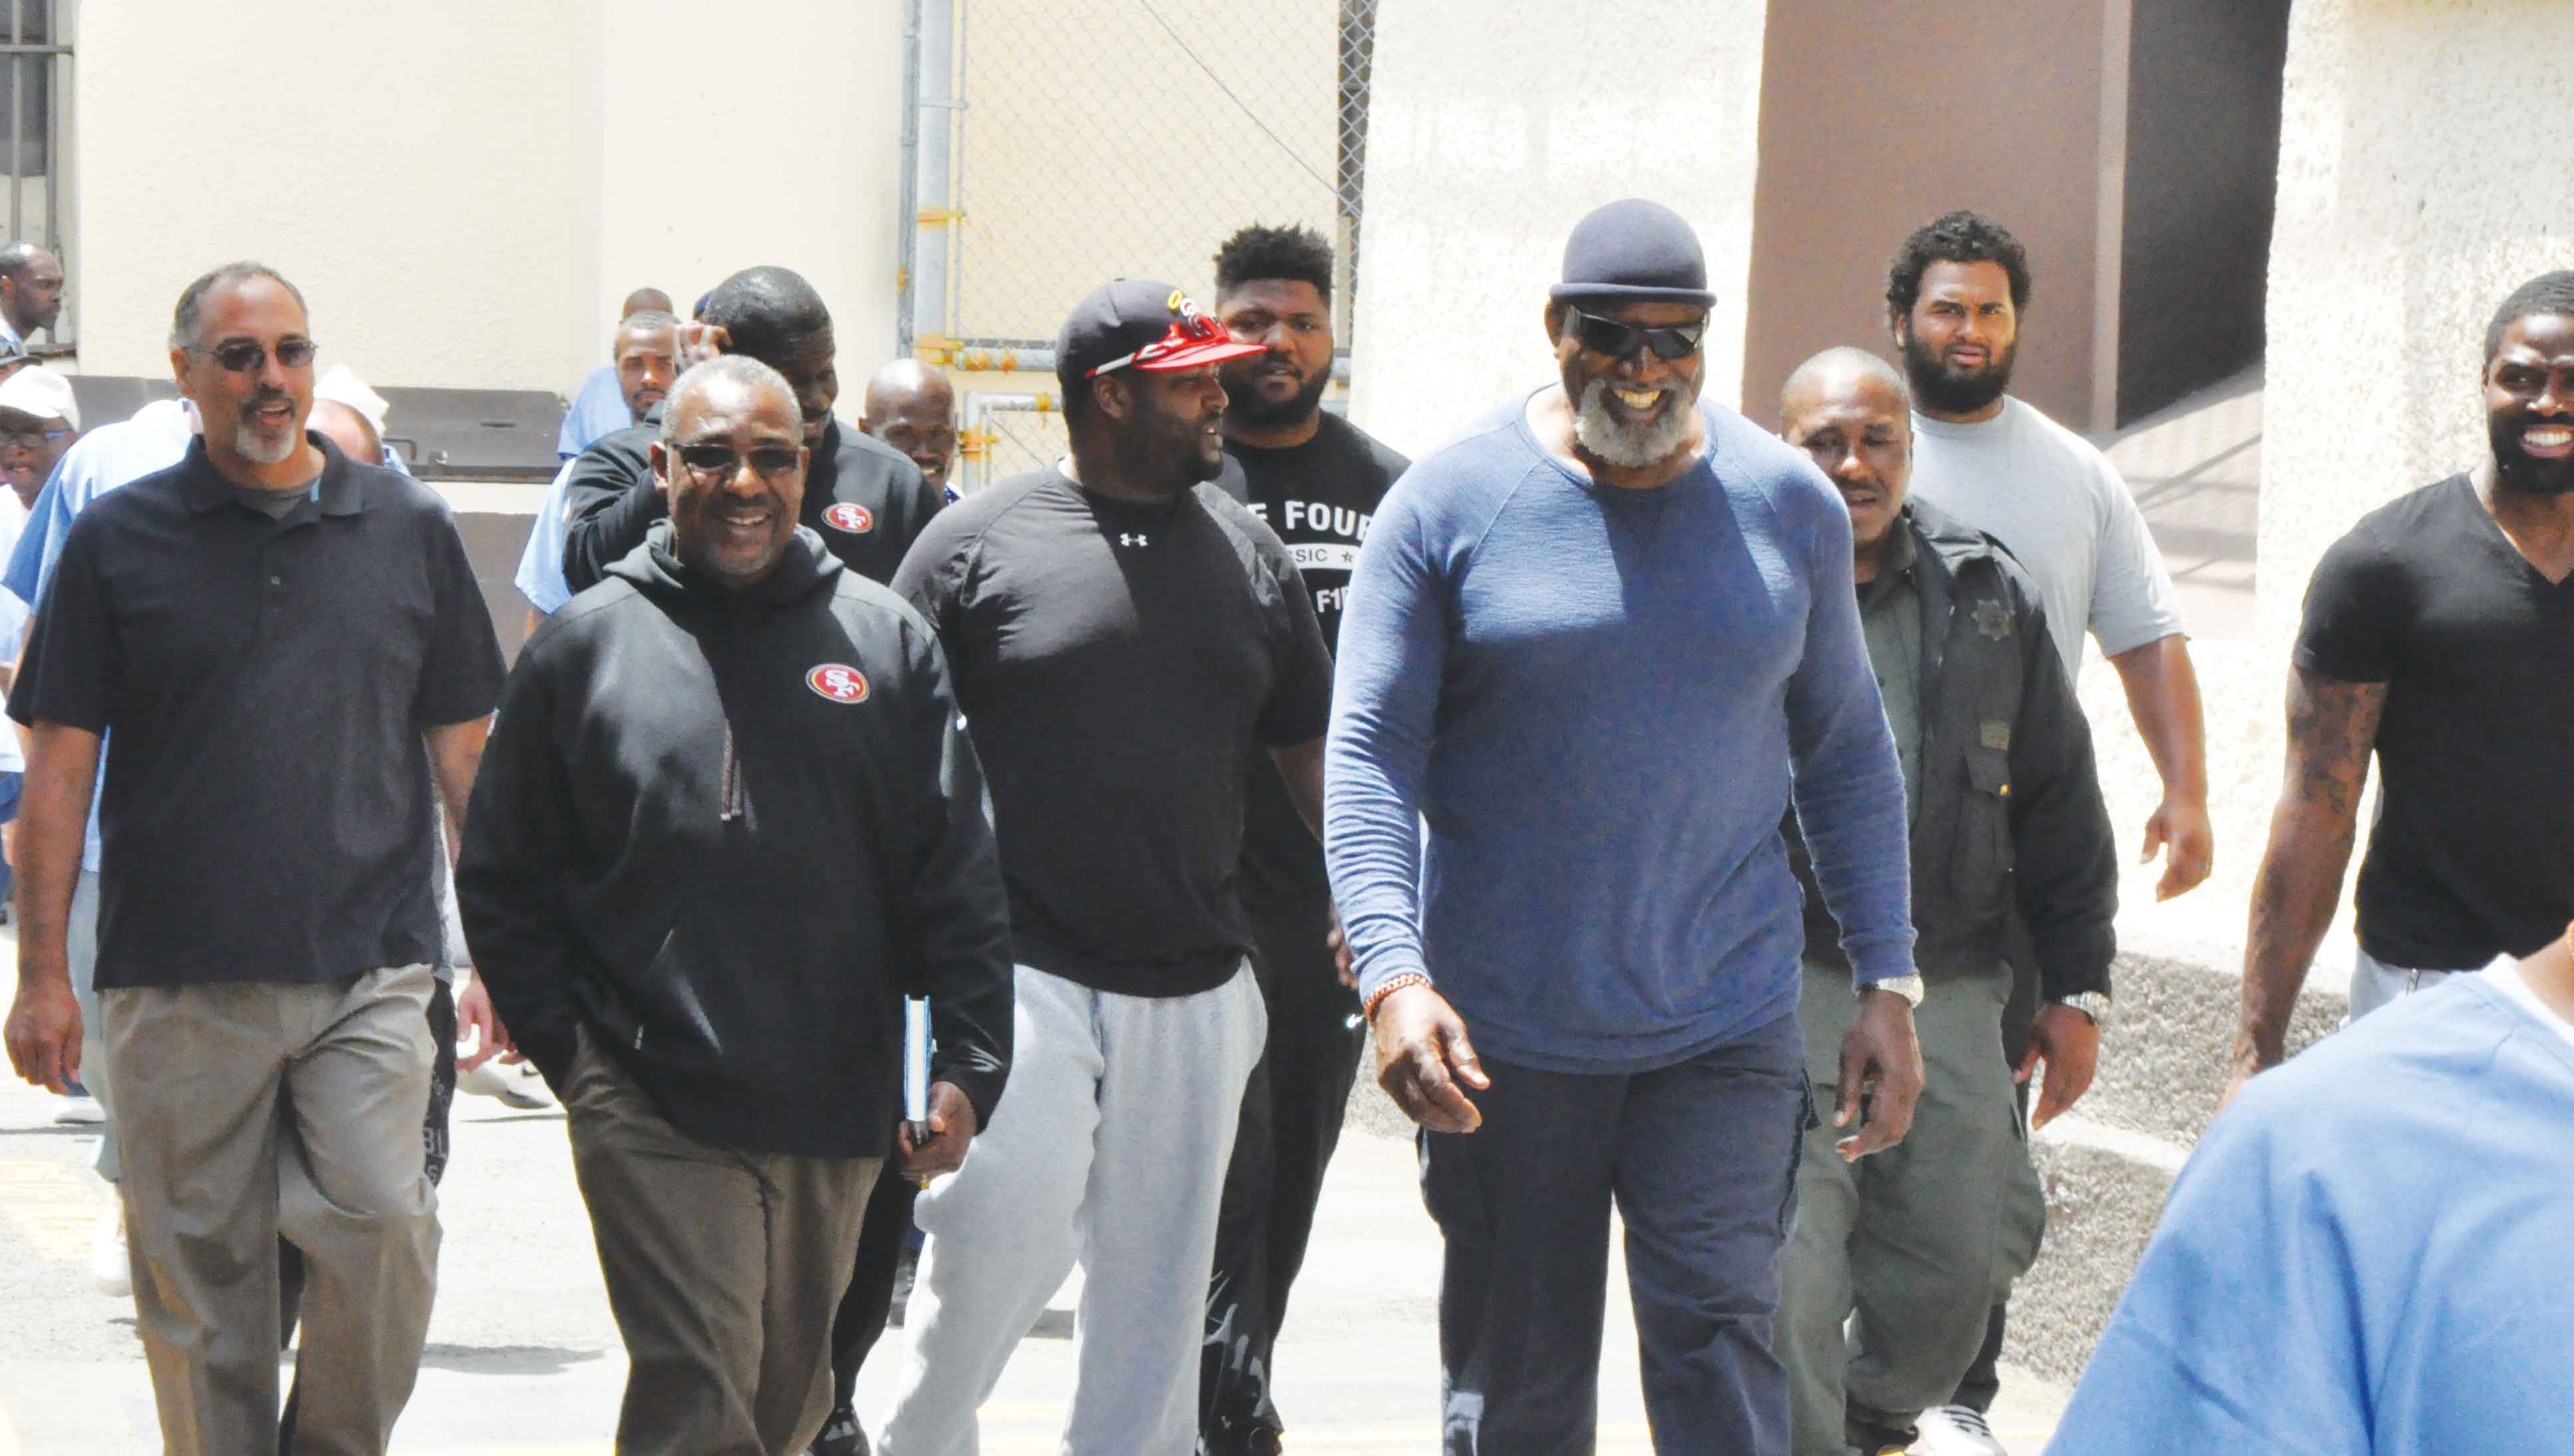 49ers Chaplain Earl Smith And Players Tour San Quentin